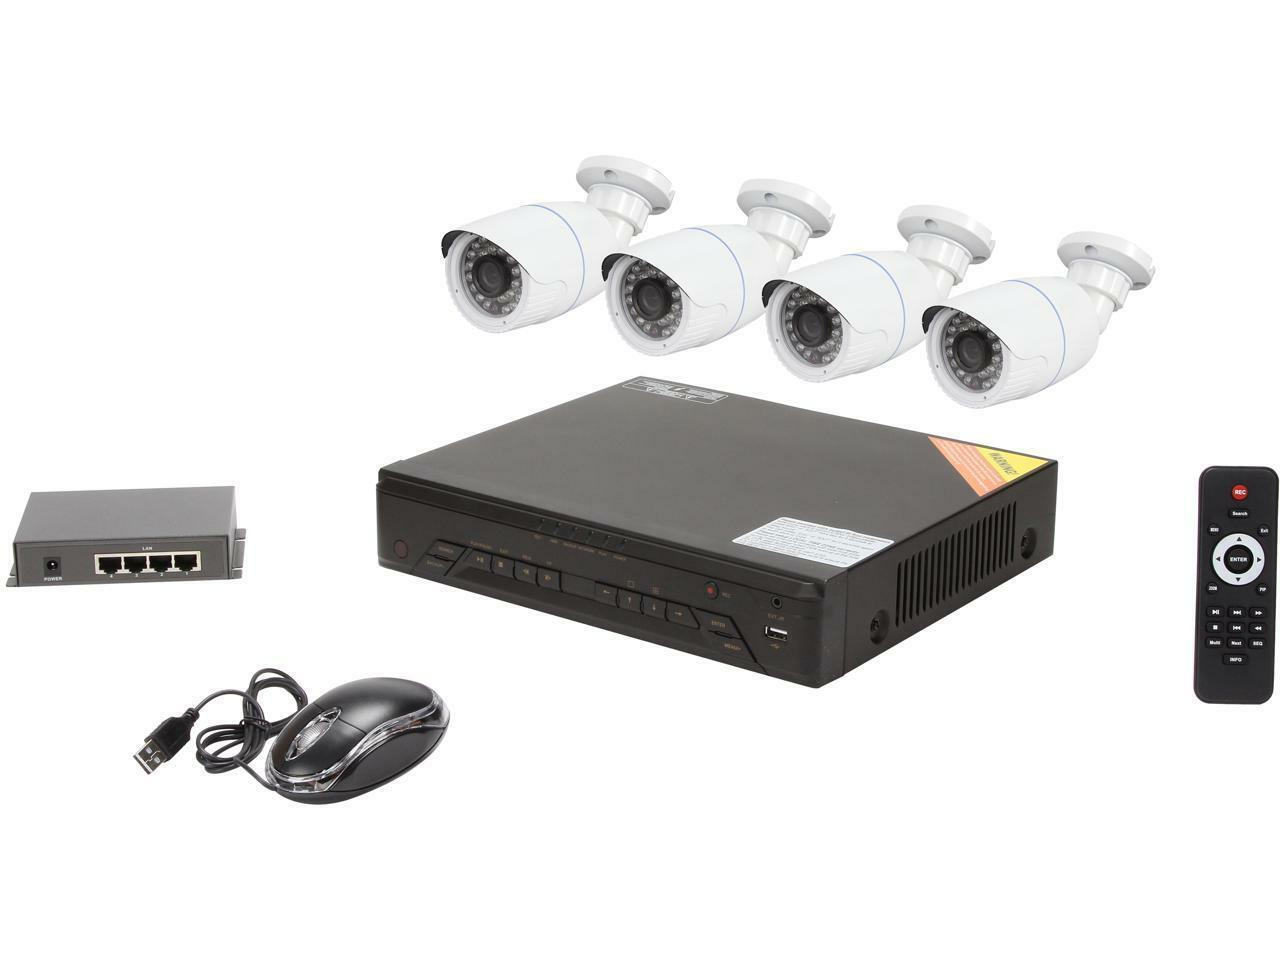 LaView LV-KNT0404B1 Professional 4 Channel HD IP Security System Bullet Camera